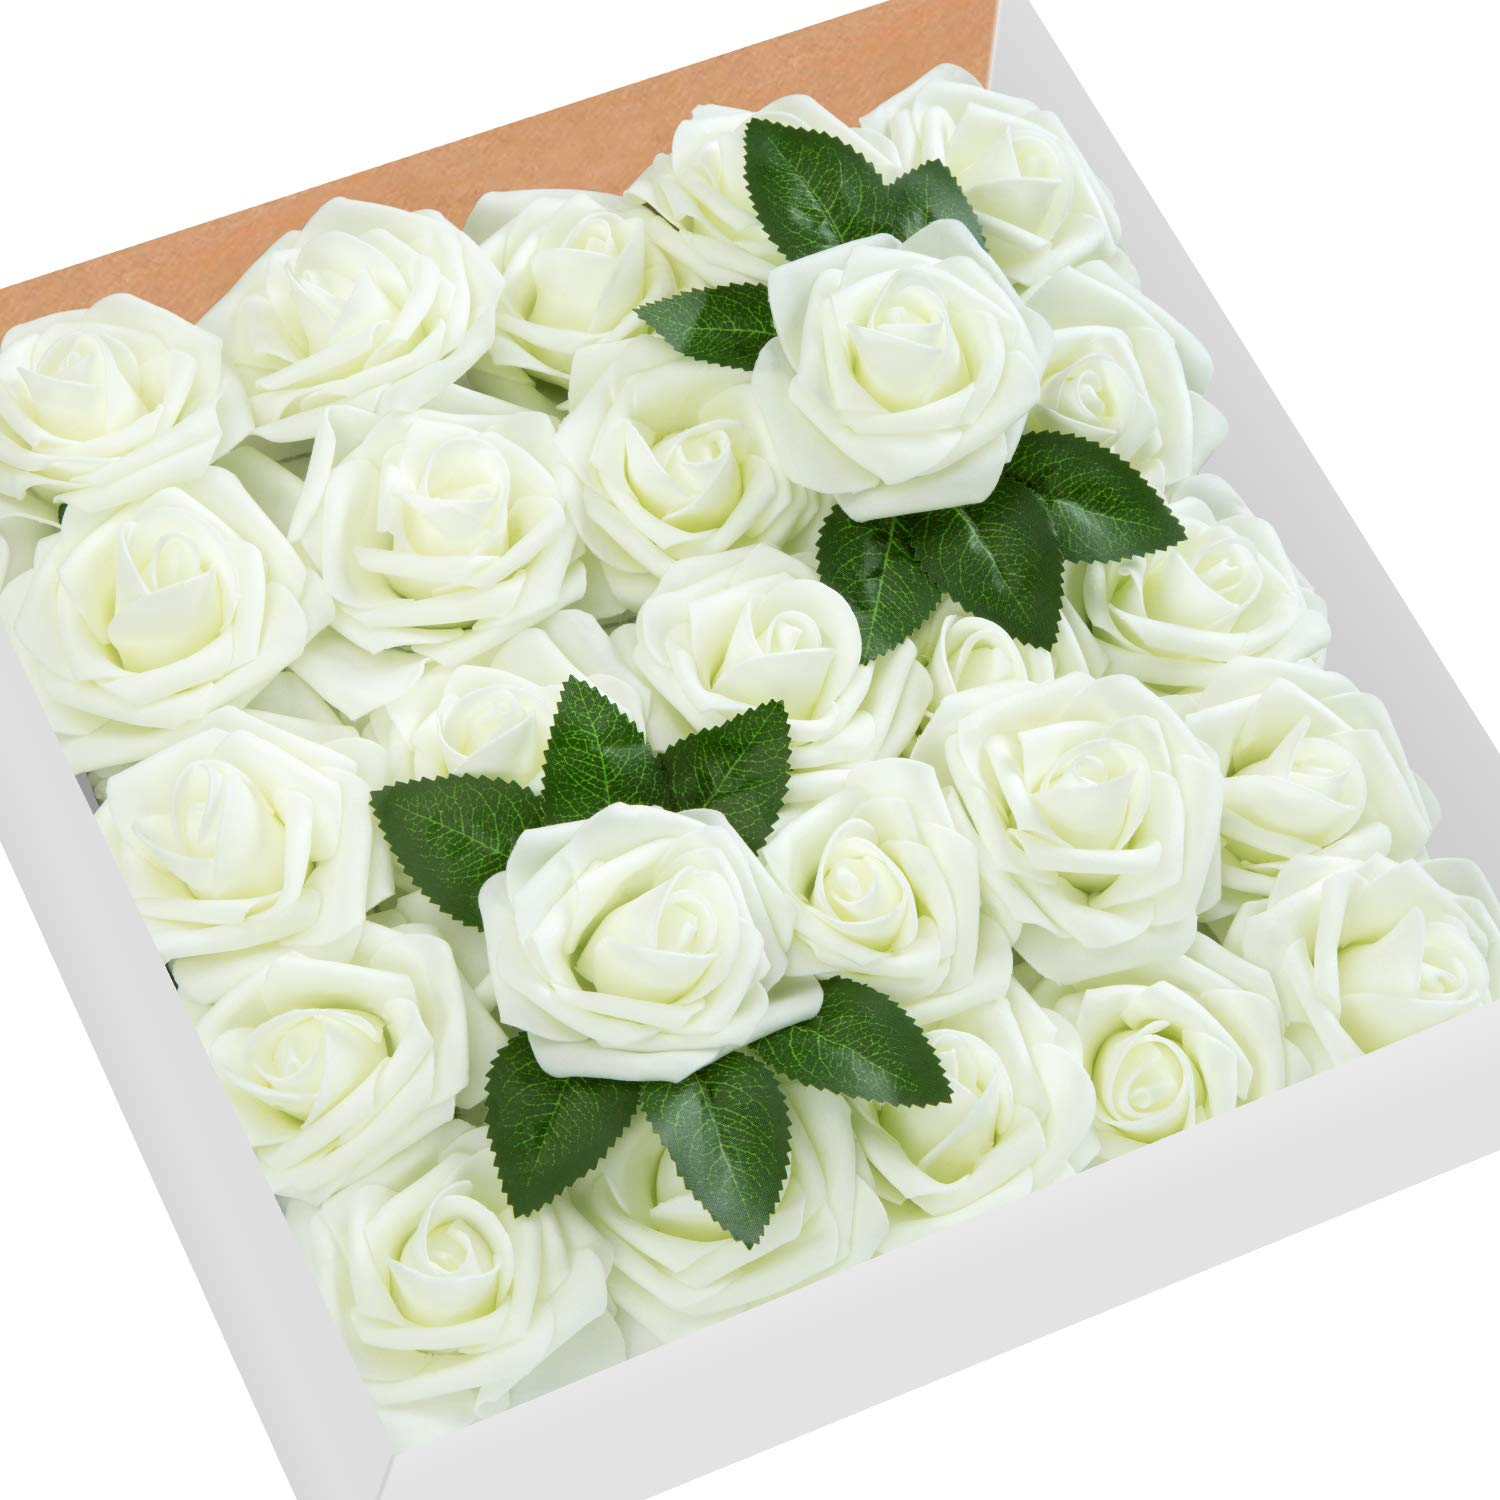 MoonLa-Artificial-Flowers-Ivory-Roses-50pcs-Real-Looking-Fake-Flowers-Foam-Roses-wStem-DIY-Wedding-Bouquets-Centerpieces-Baby-Shower-Party-Home-Decorations